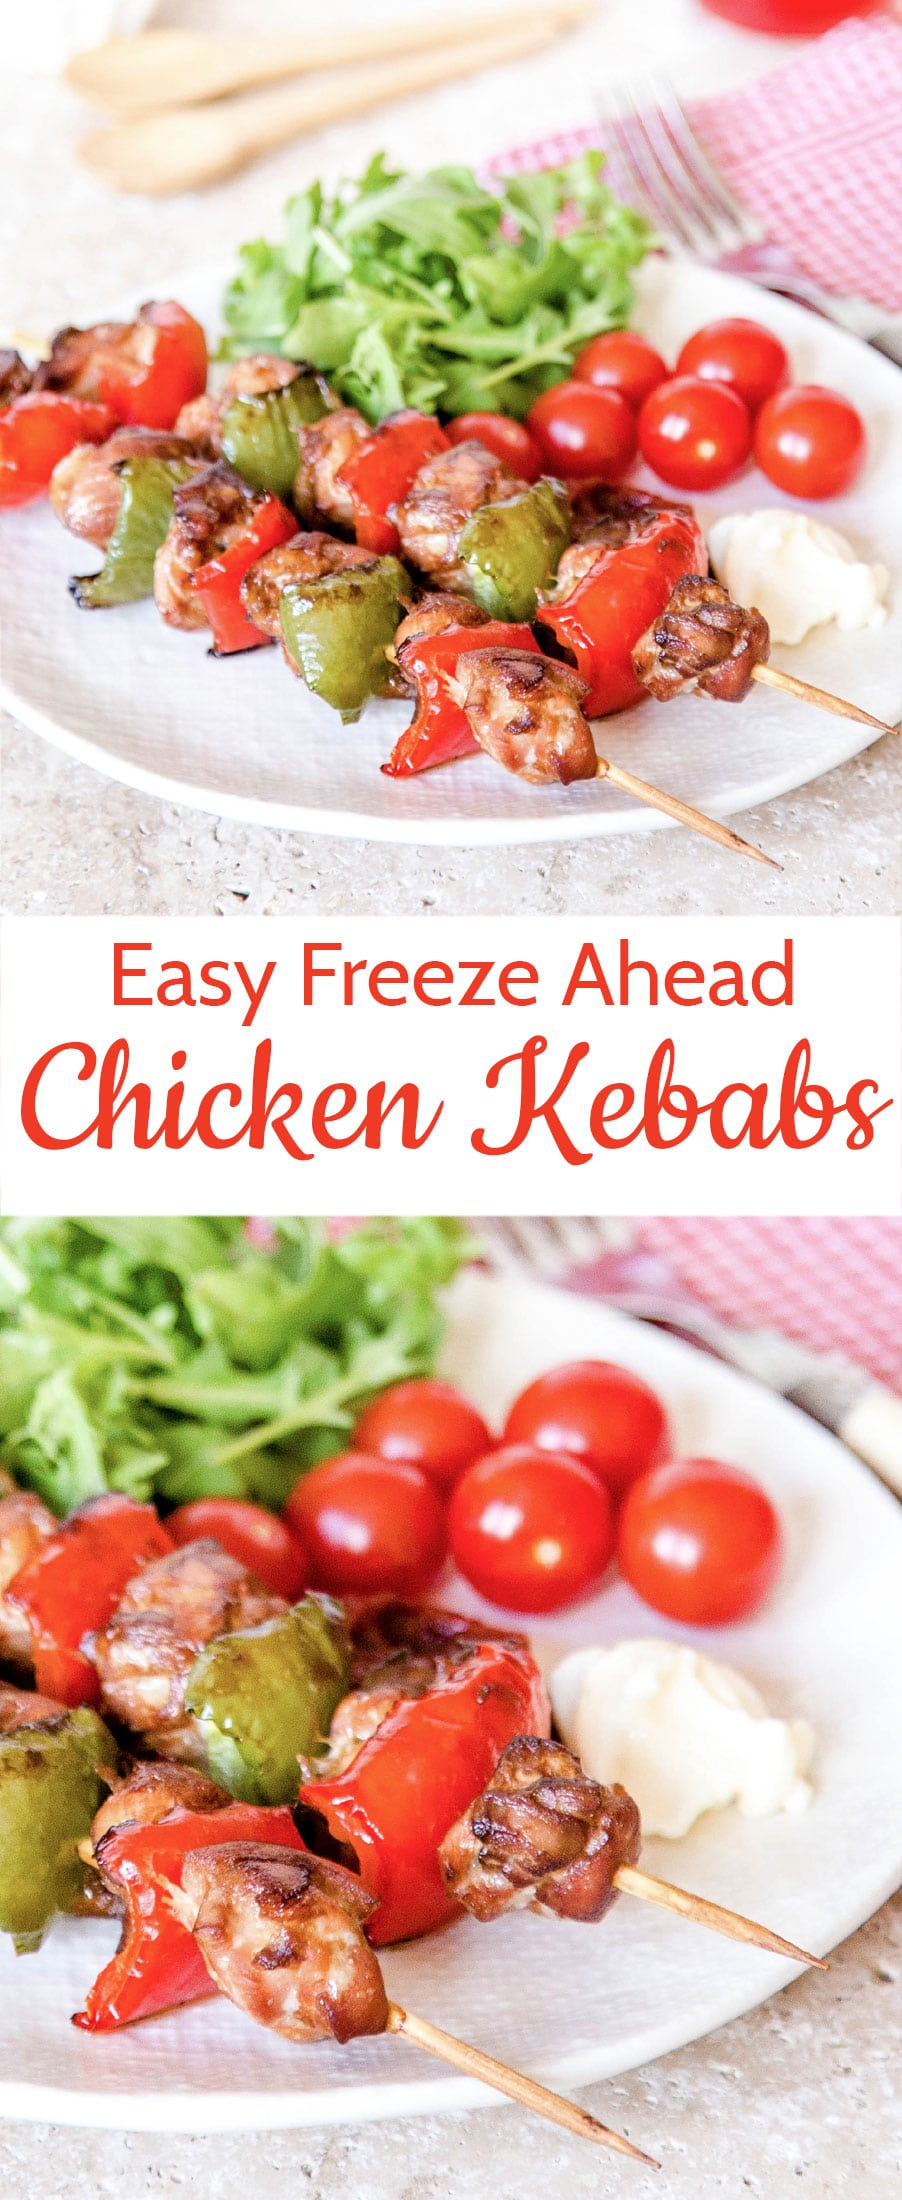 Easy flavorsome tender chicken kebabs - prep in advance by freezing in the marinade